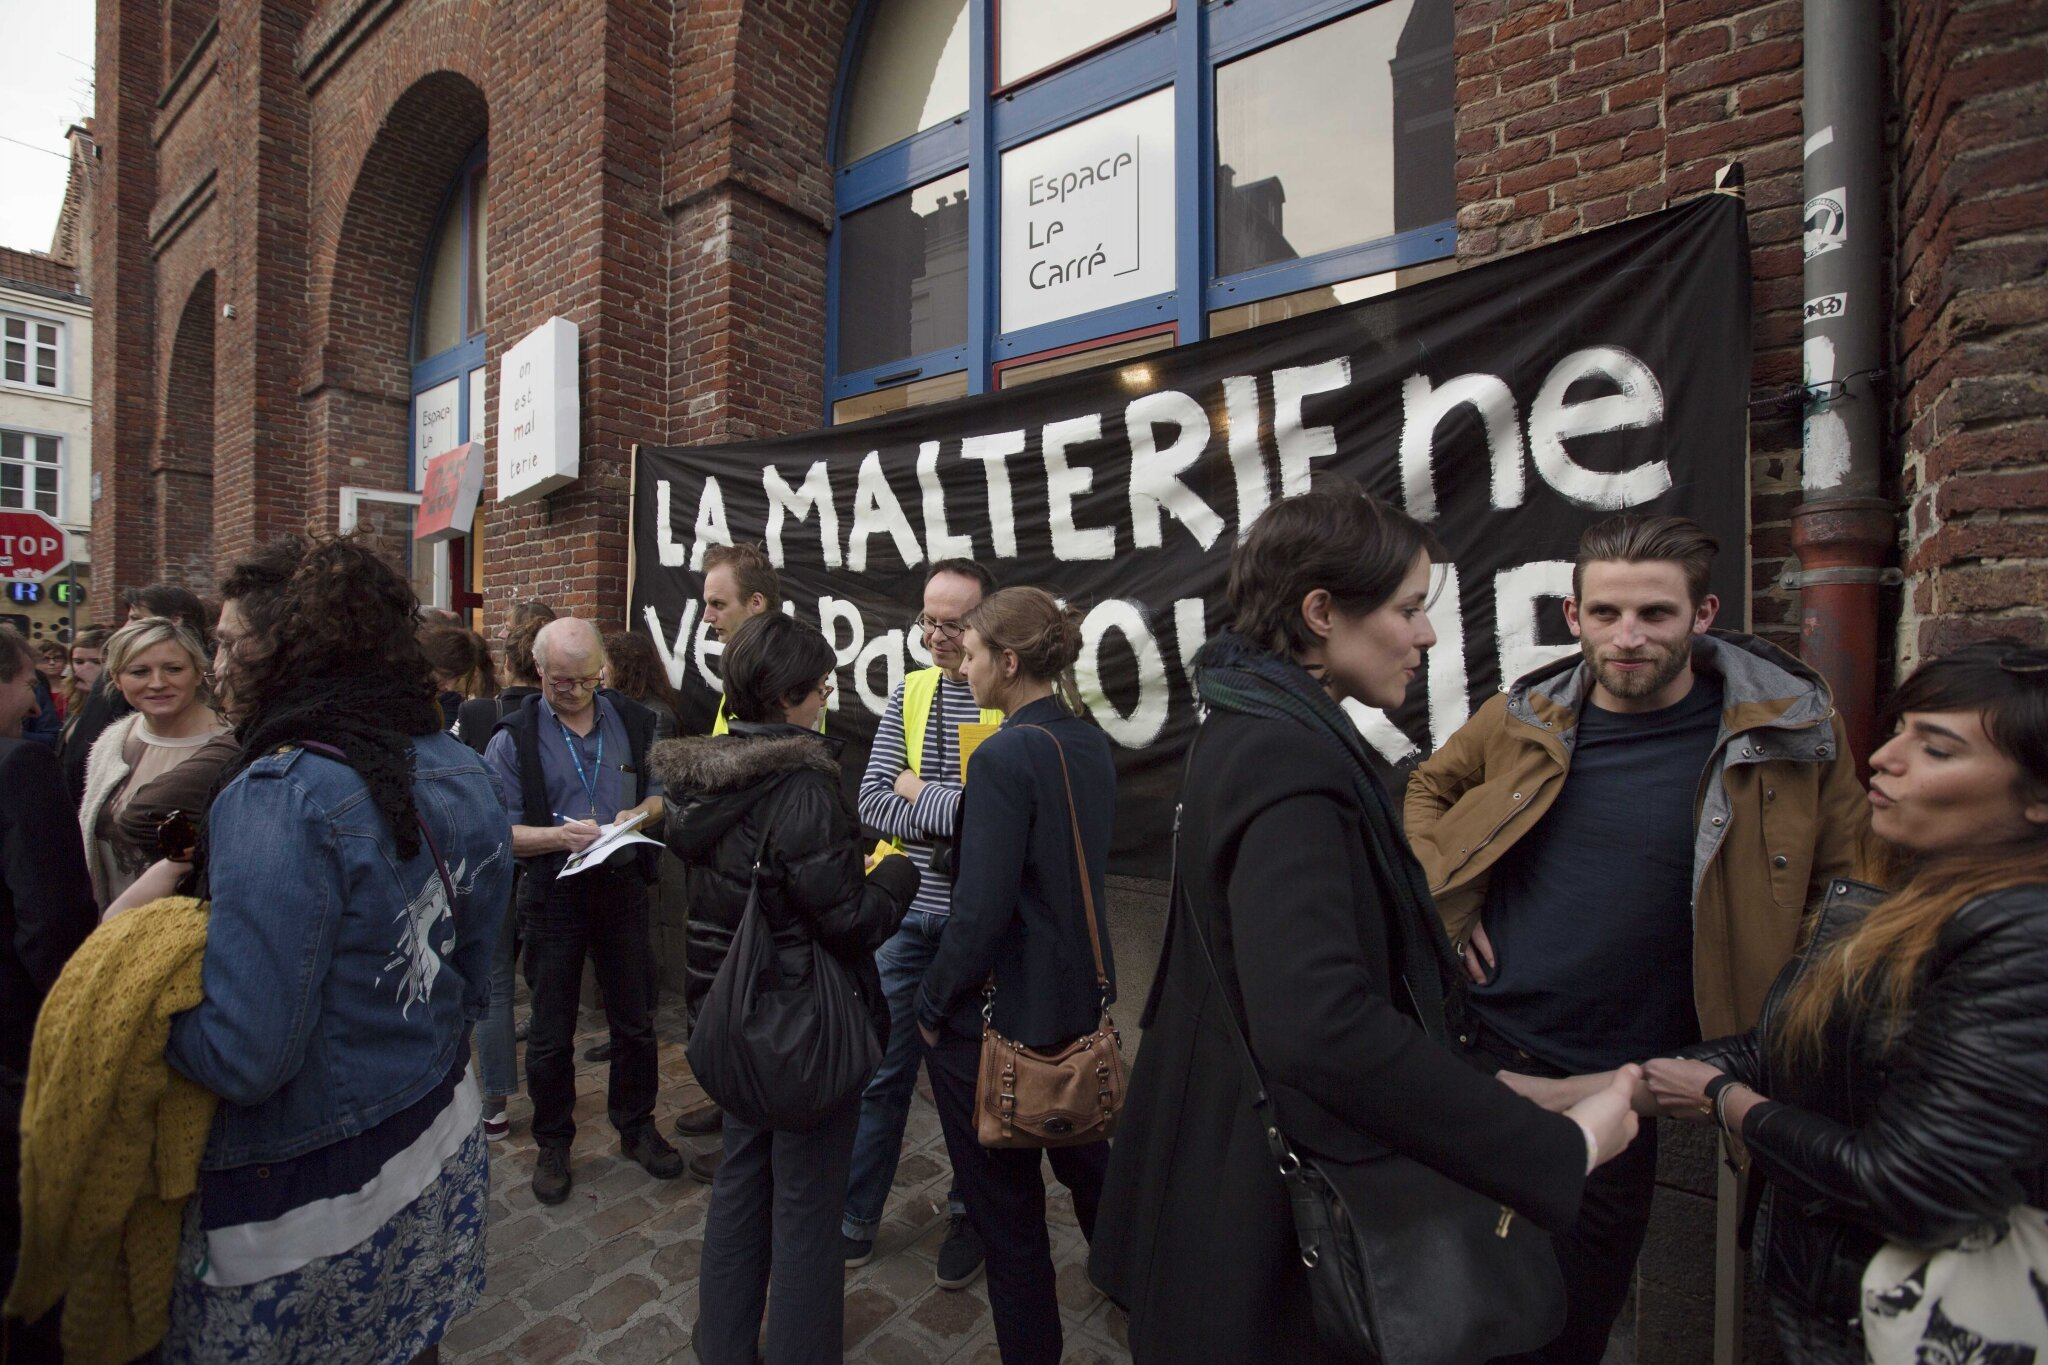 Maltactions-Carre-Lille3000-2015-86